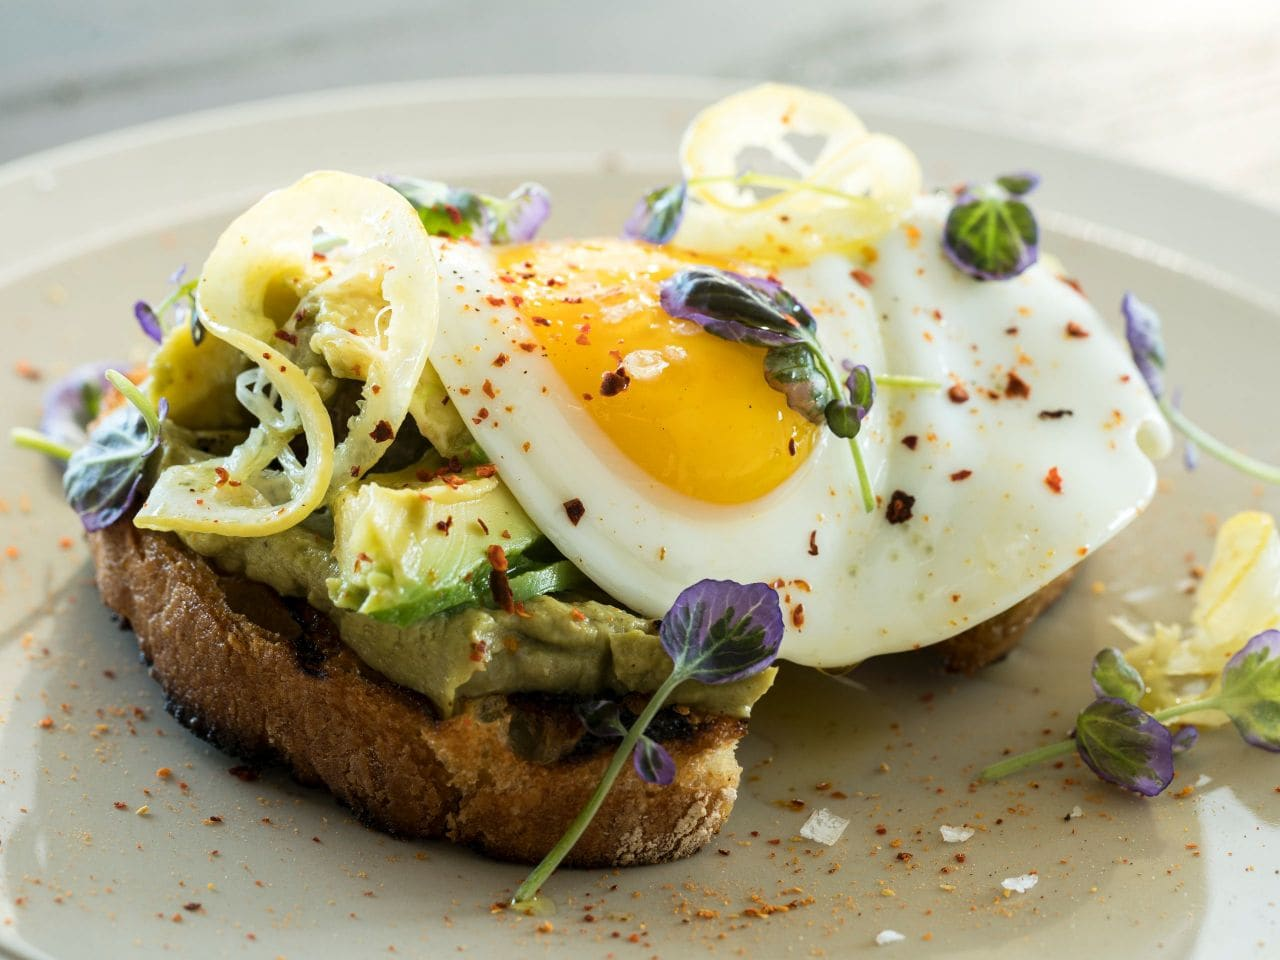 Andaz-Scottsdale-Resort-and-Spa-P072-Weft-Warp-Avocado-Toast.4x3.adapt.1280.960.jpg